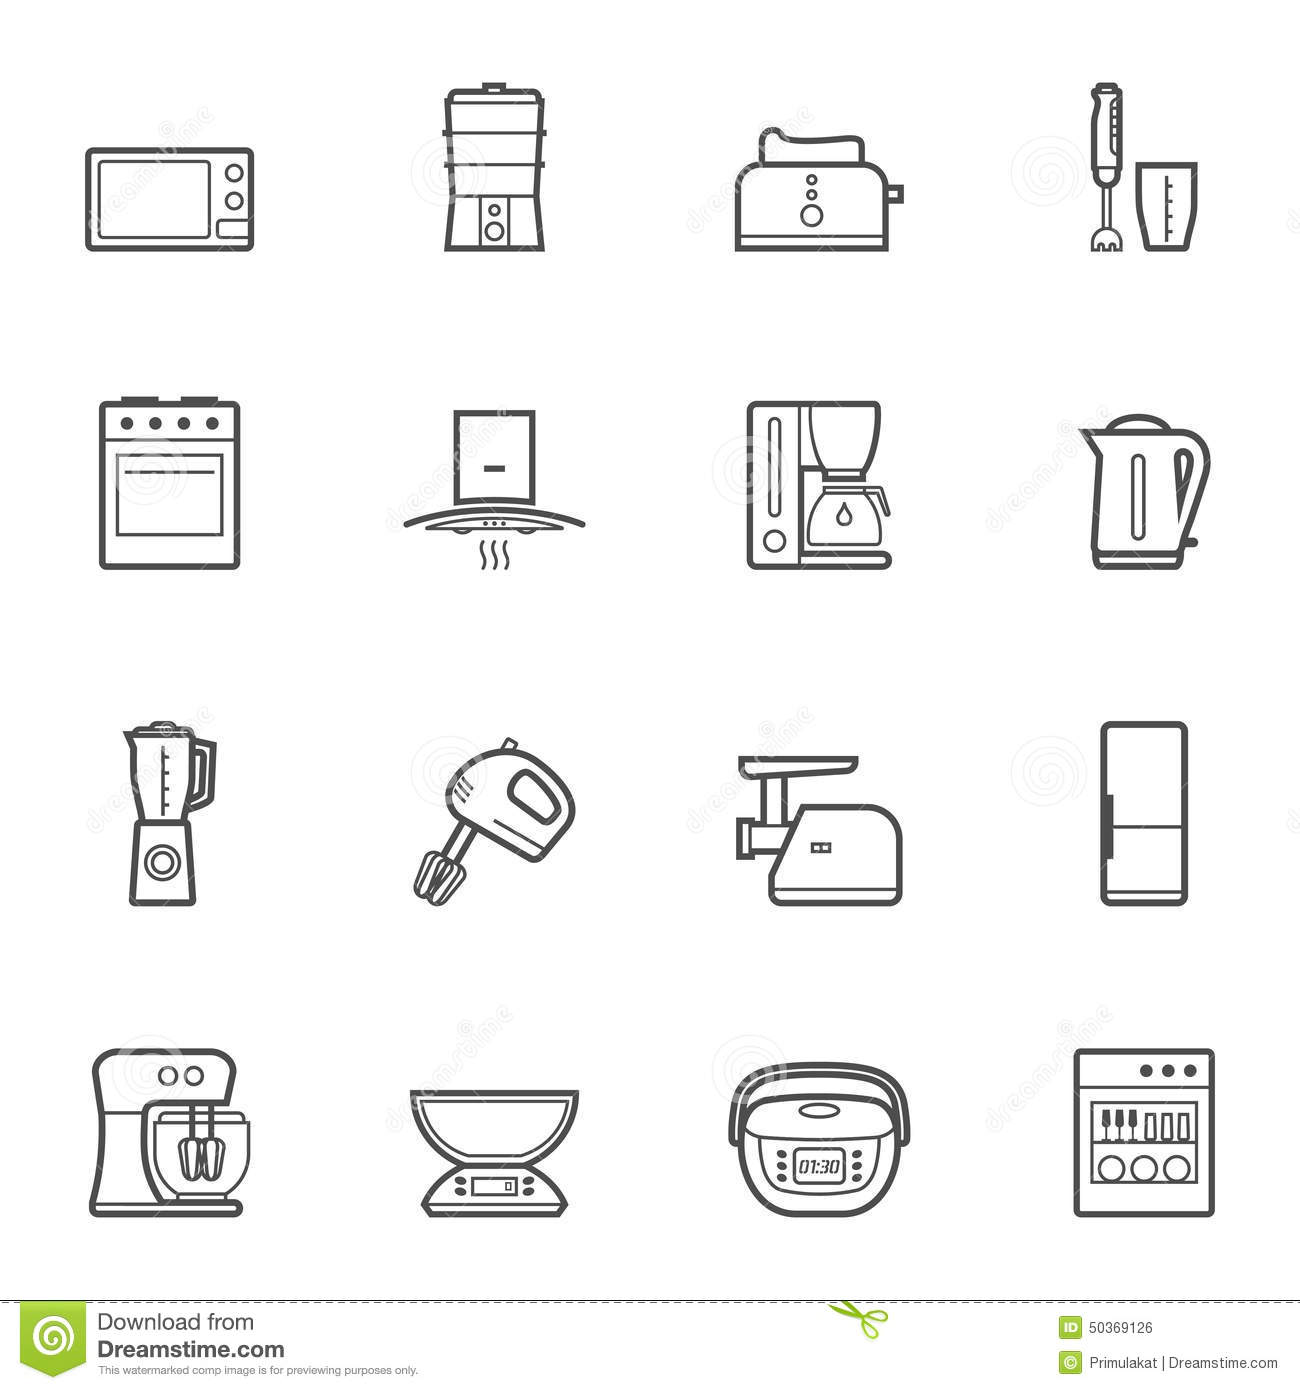 Kitchen Appliances Vector Line Style Icon Set Stock Vector